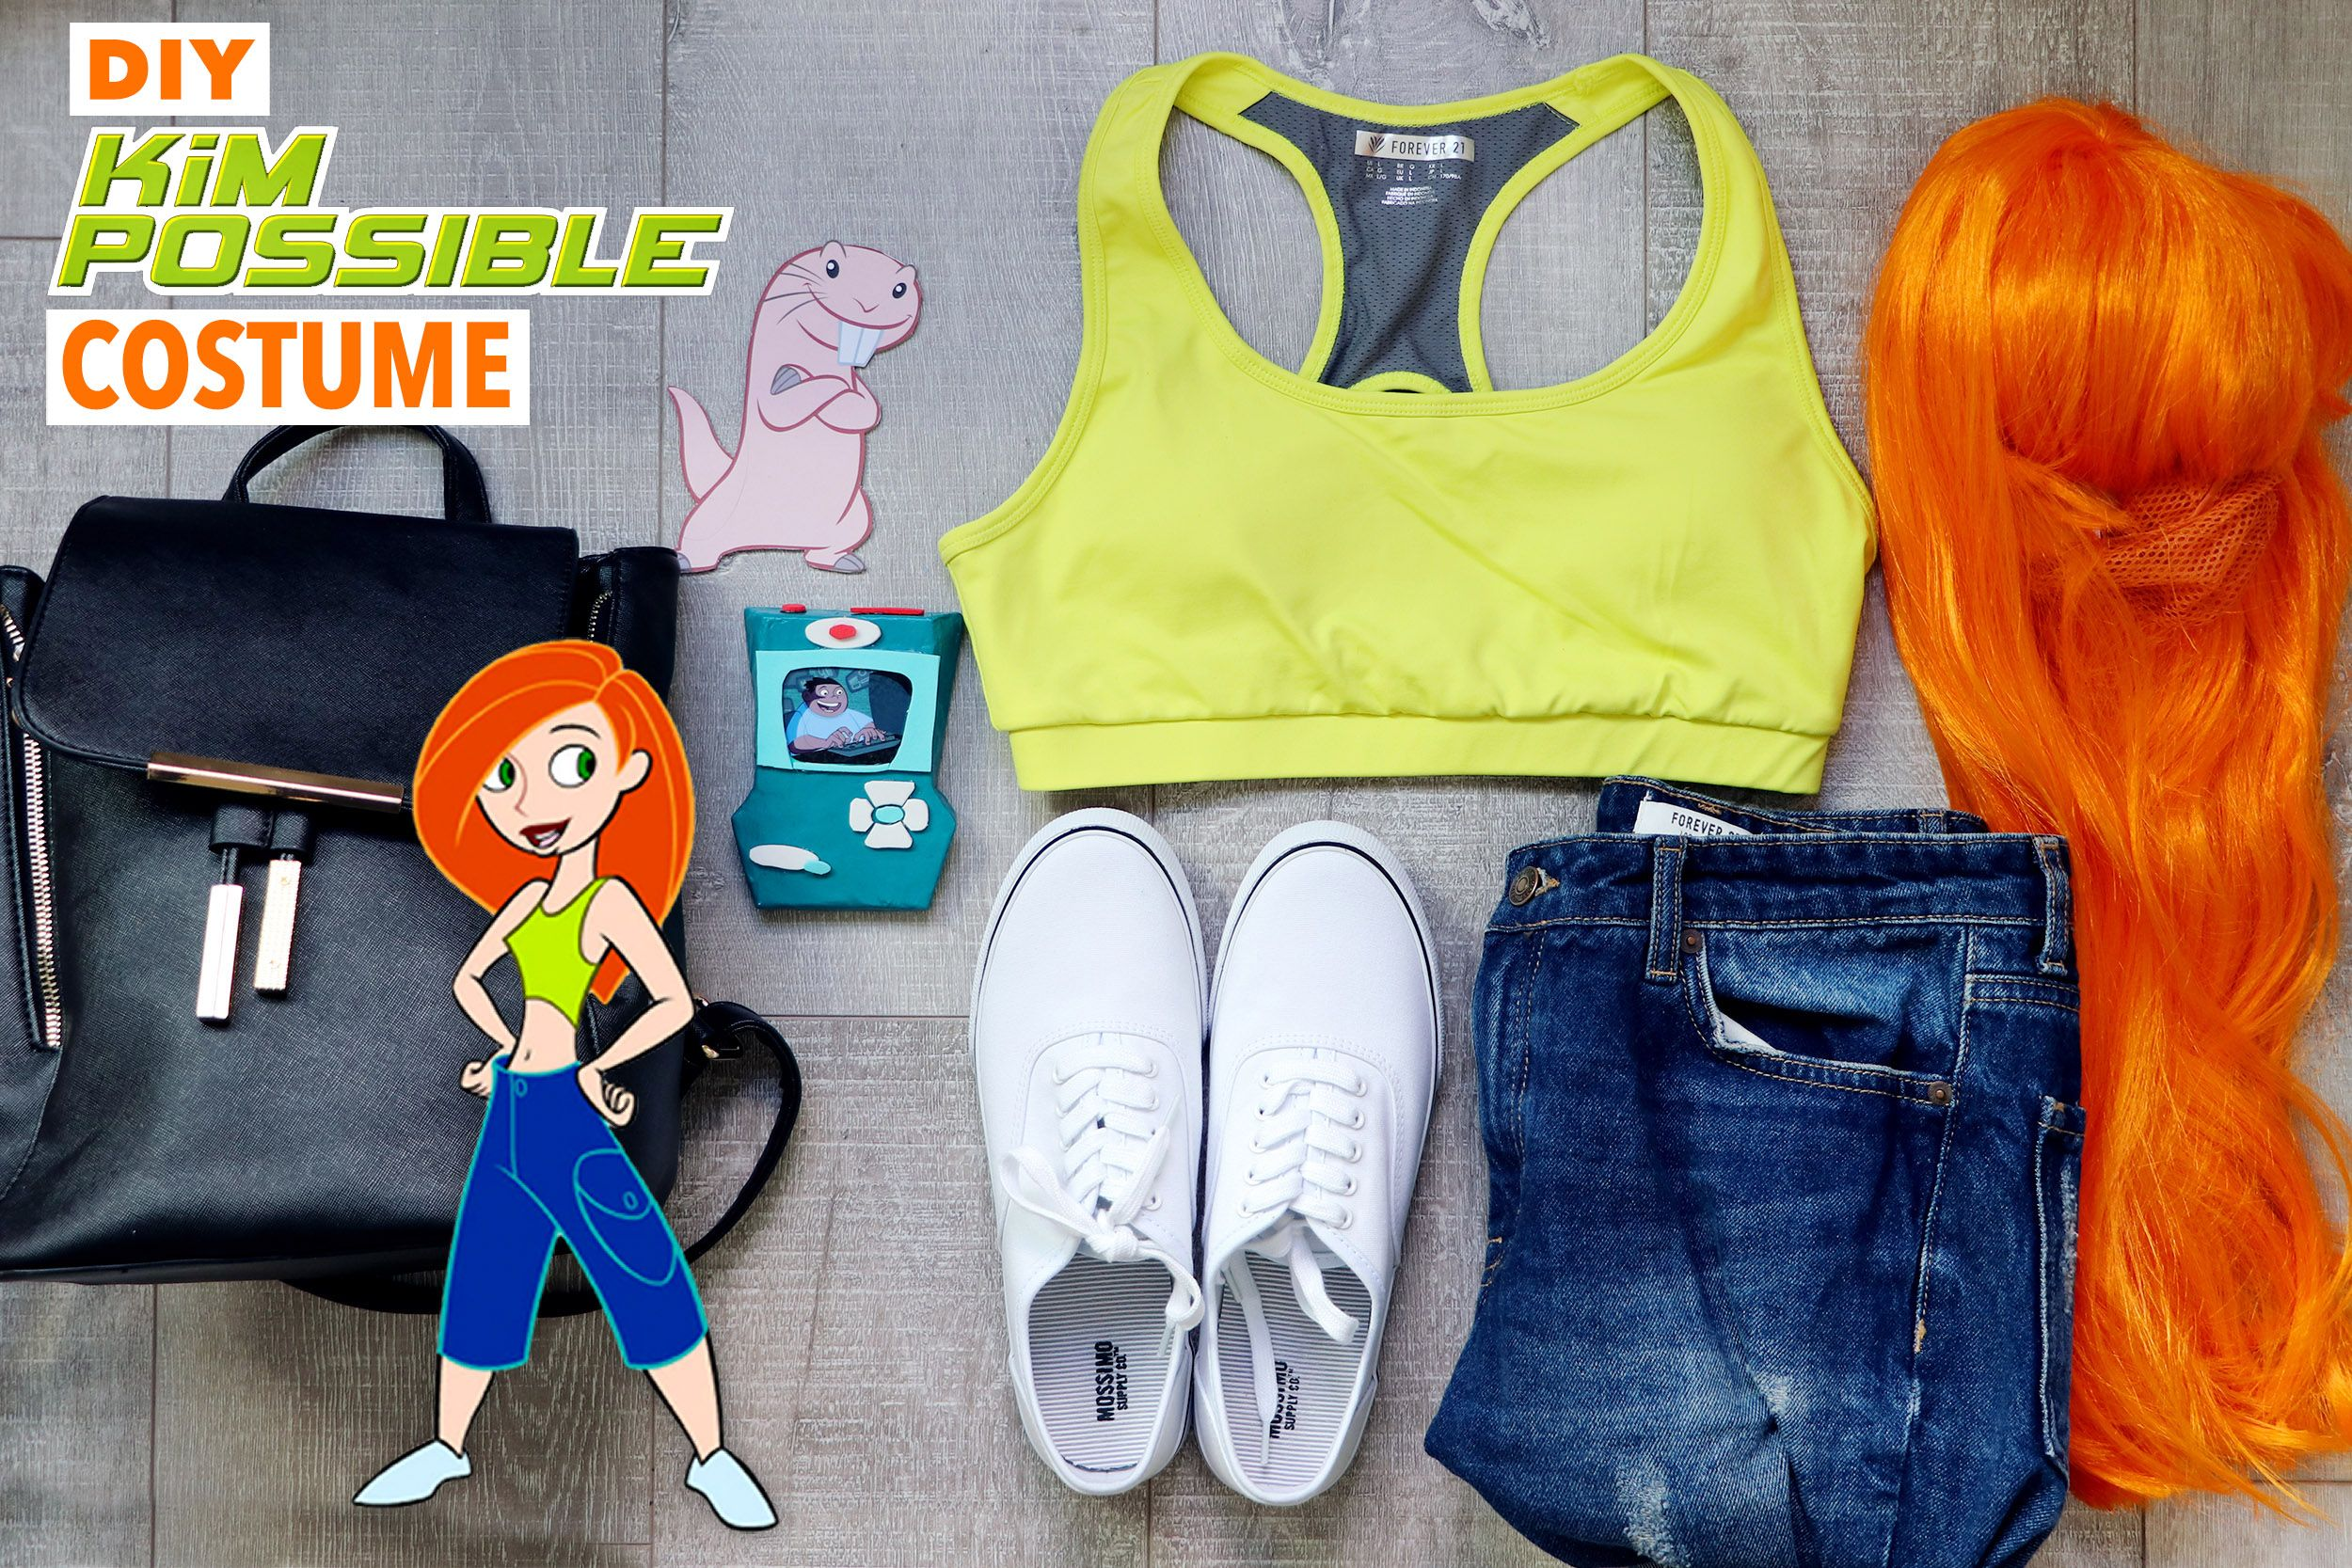 My Kim Possible Halloween Costume + DIY Kimmunicator